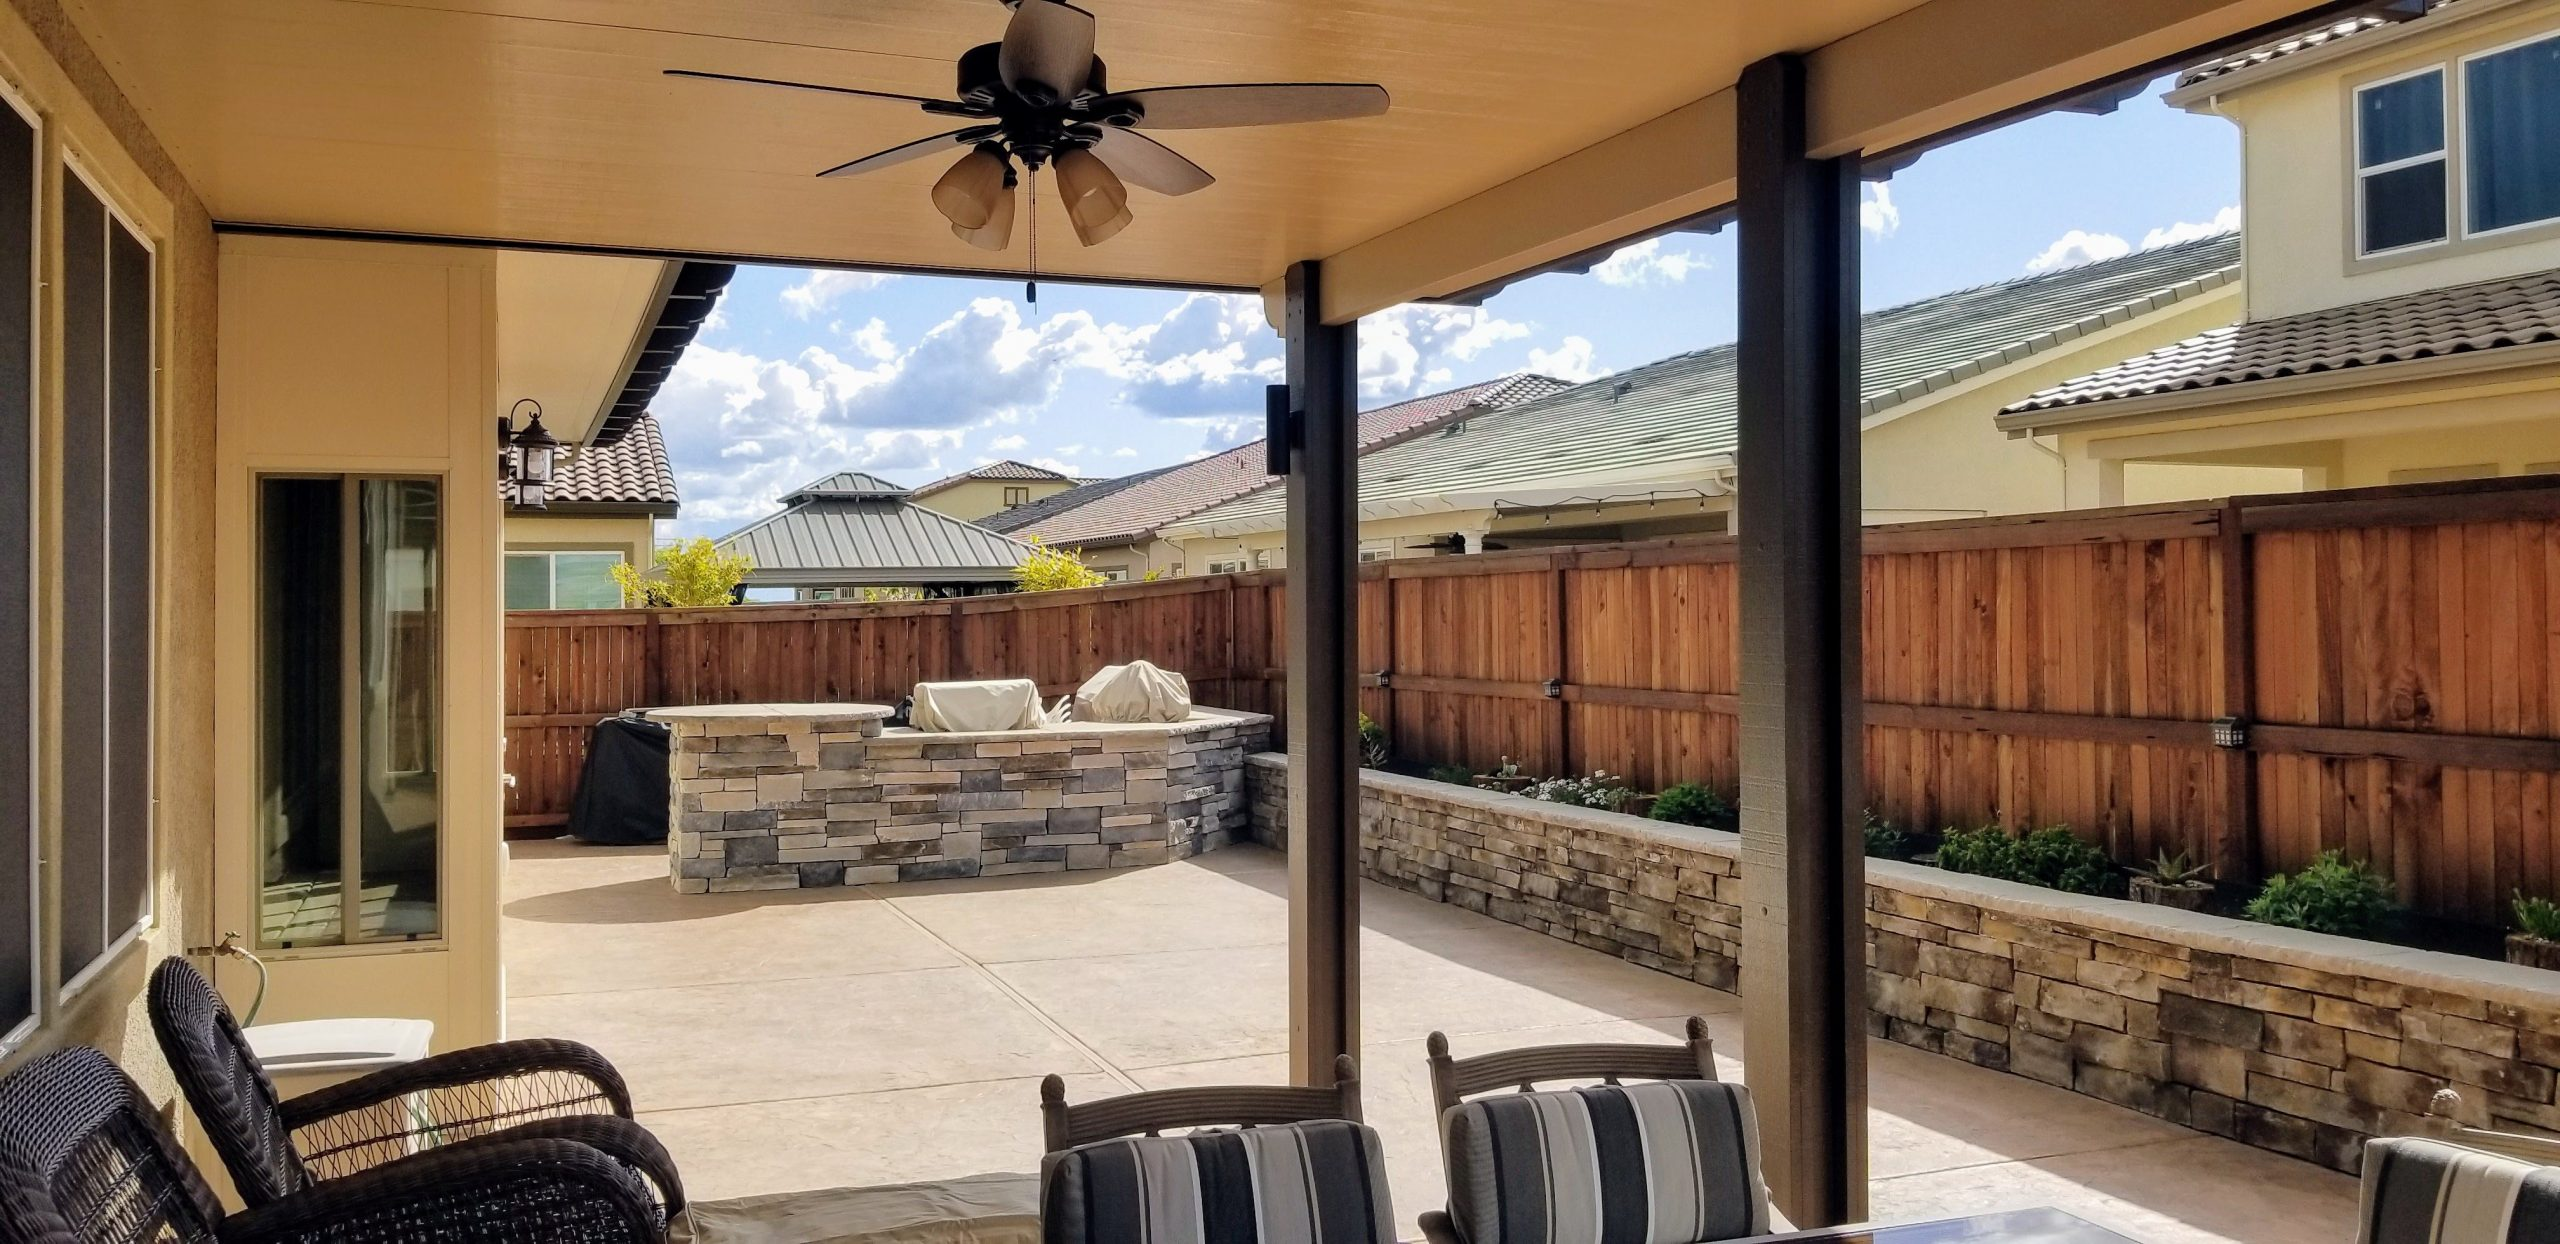 Patio Cover with Fan